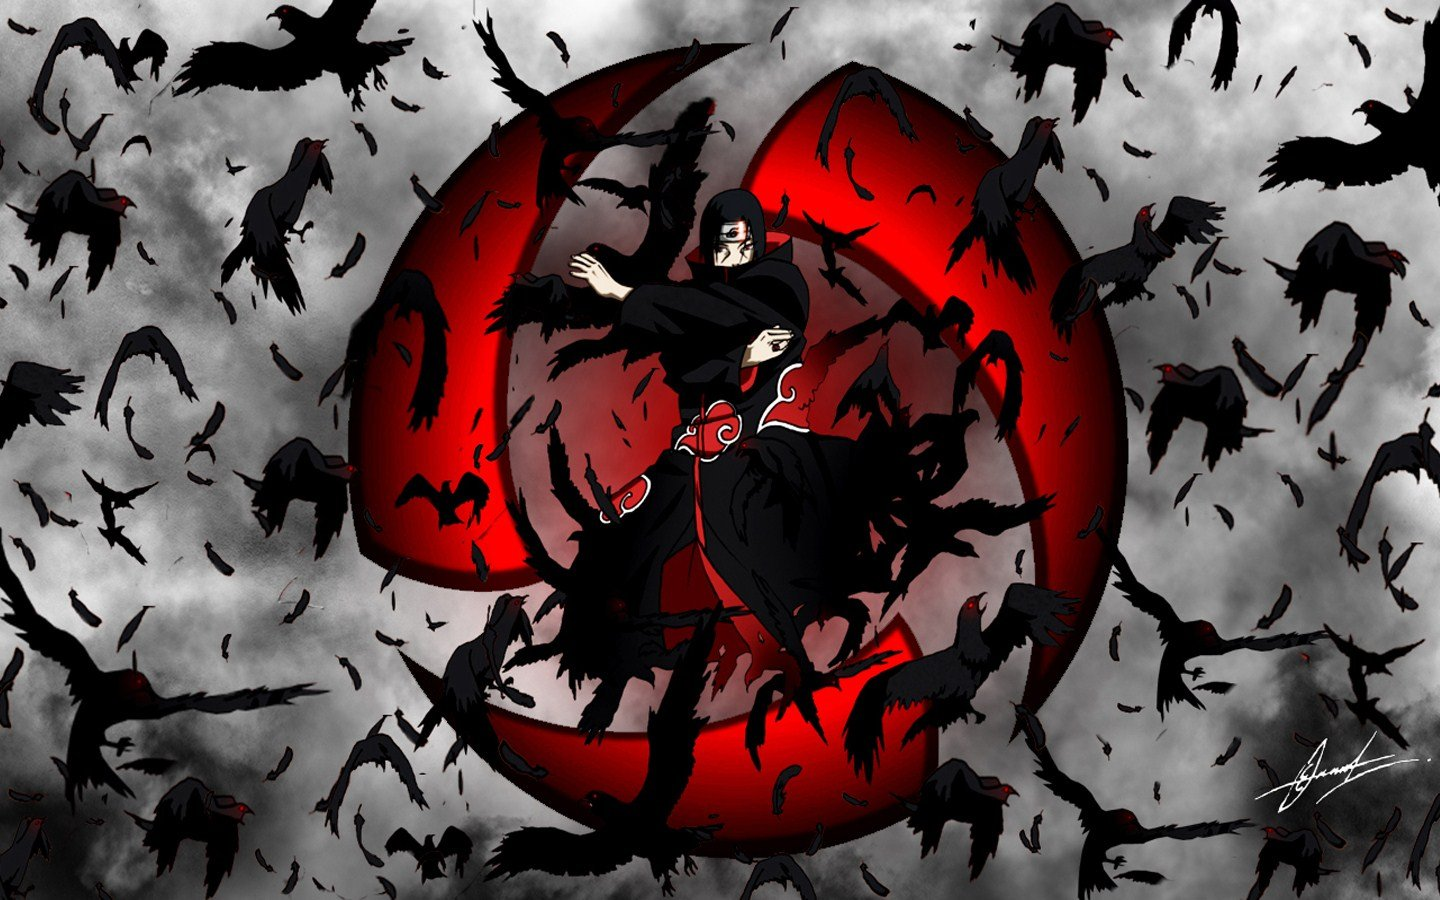 Itachi Uchiha Susanoo Wallpaper Hd: Itachi Uchiha Wallpaper HD